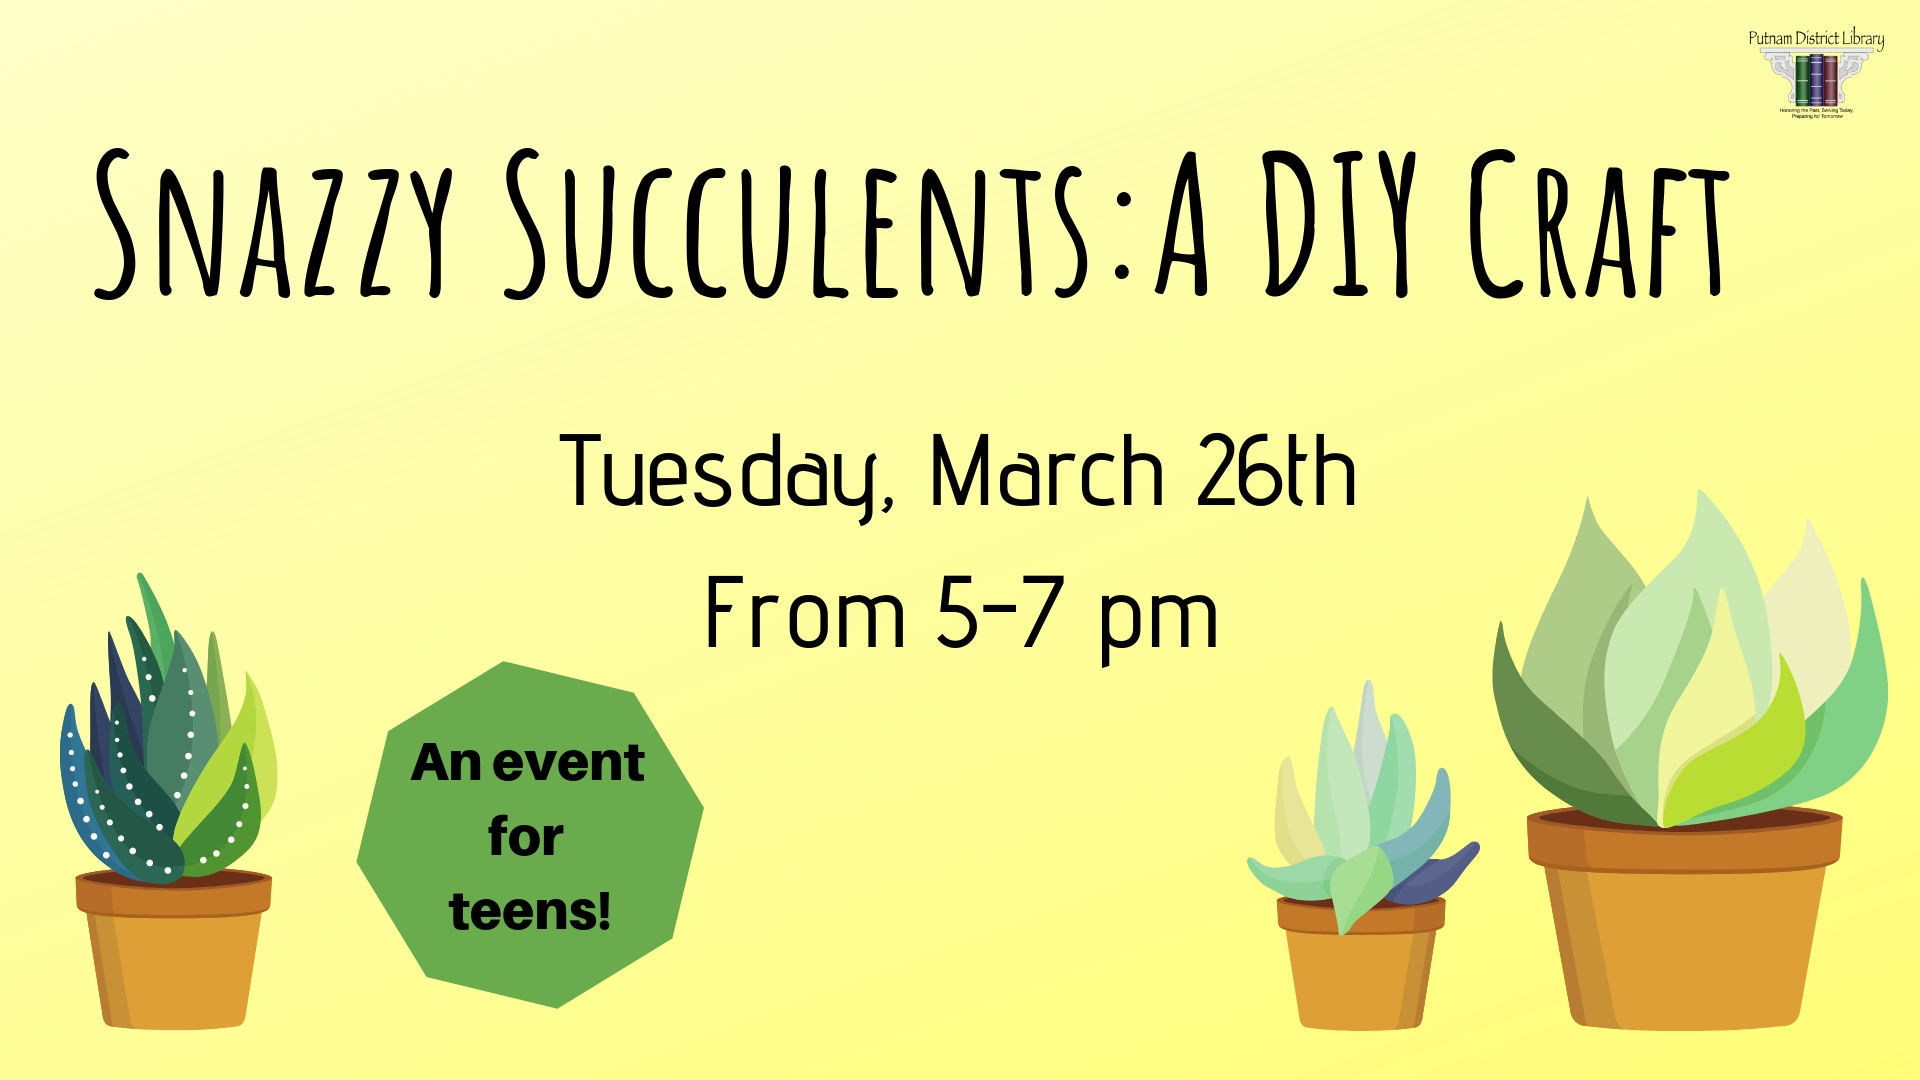 Snazzy Succulents: A DIY Craft